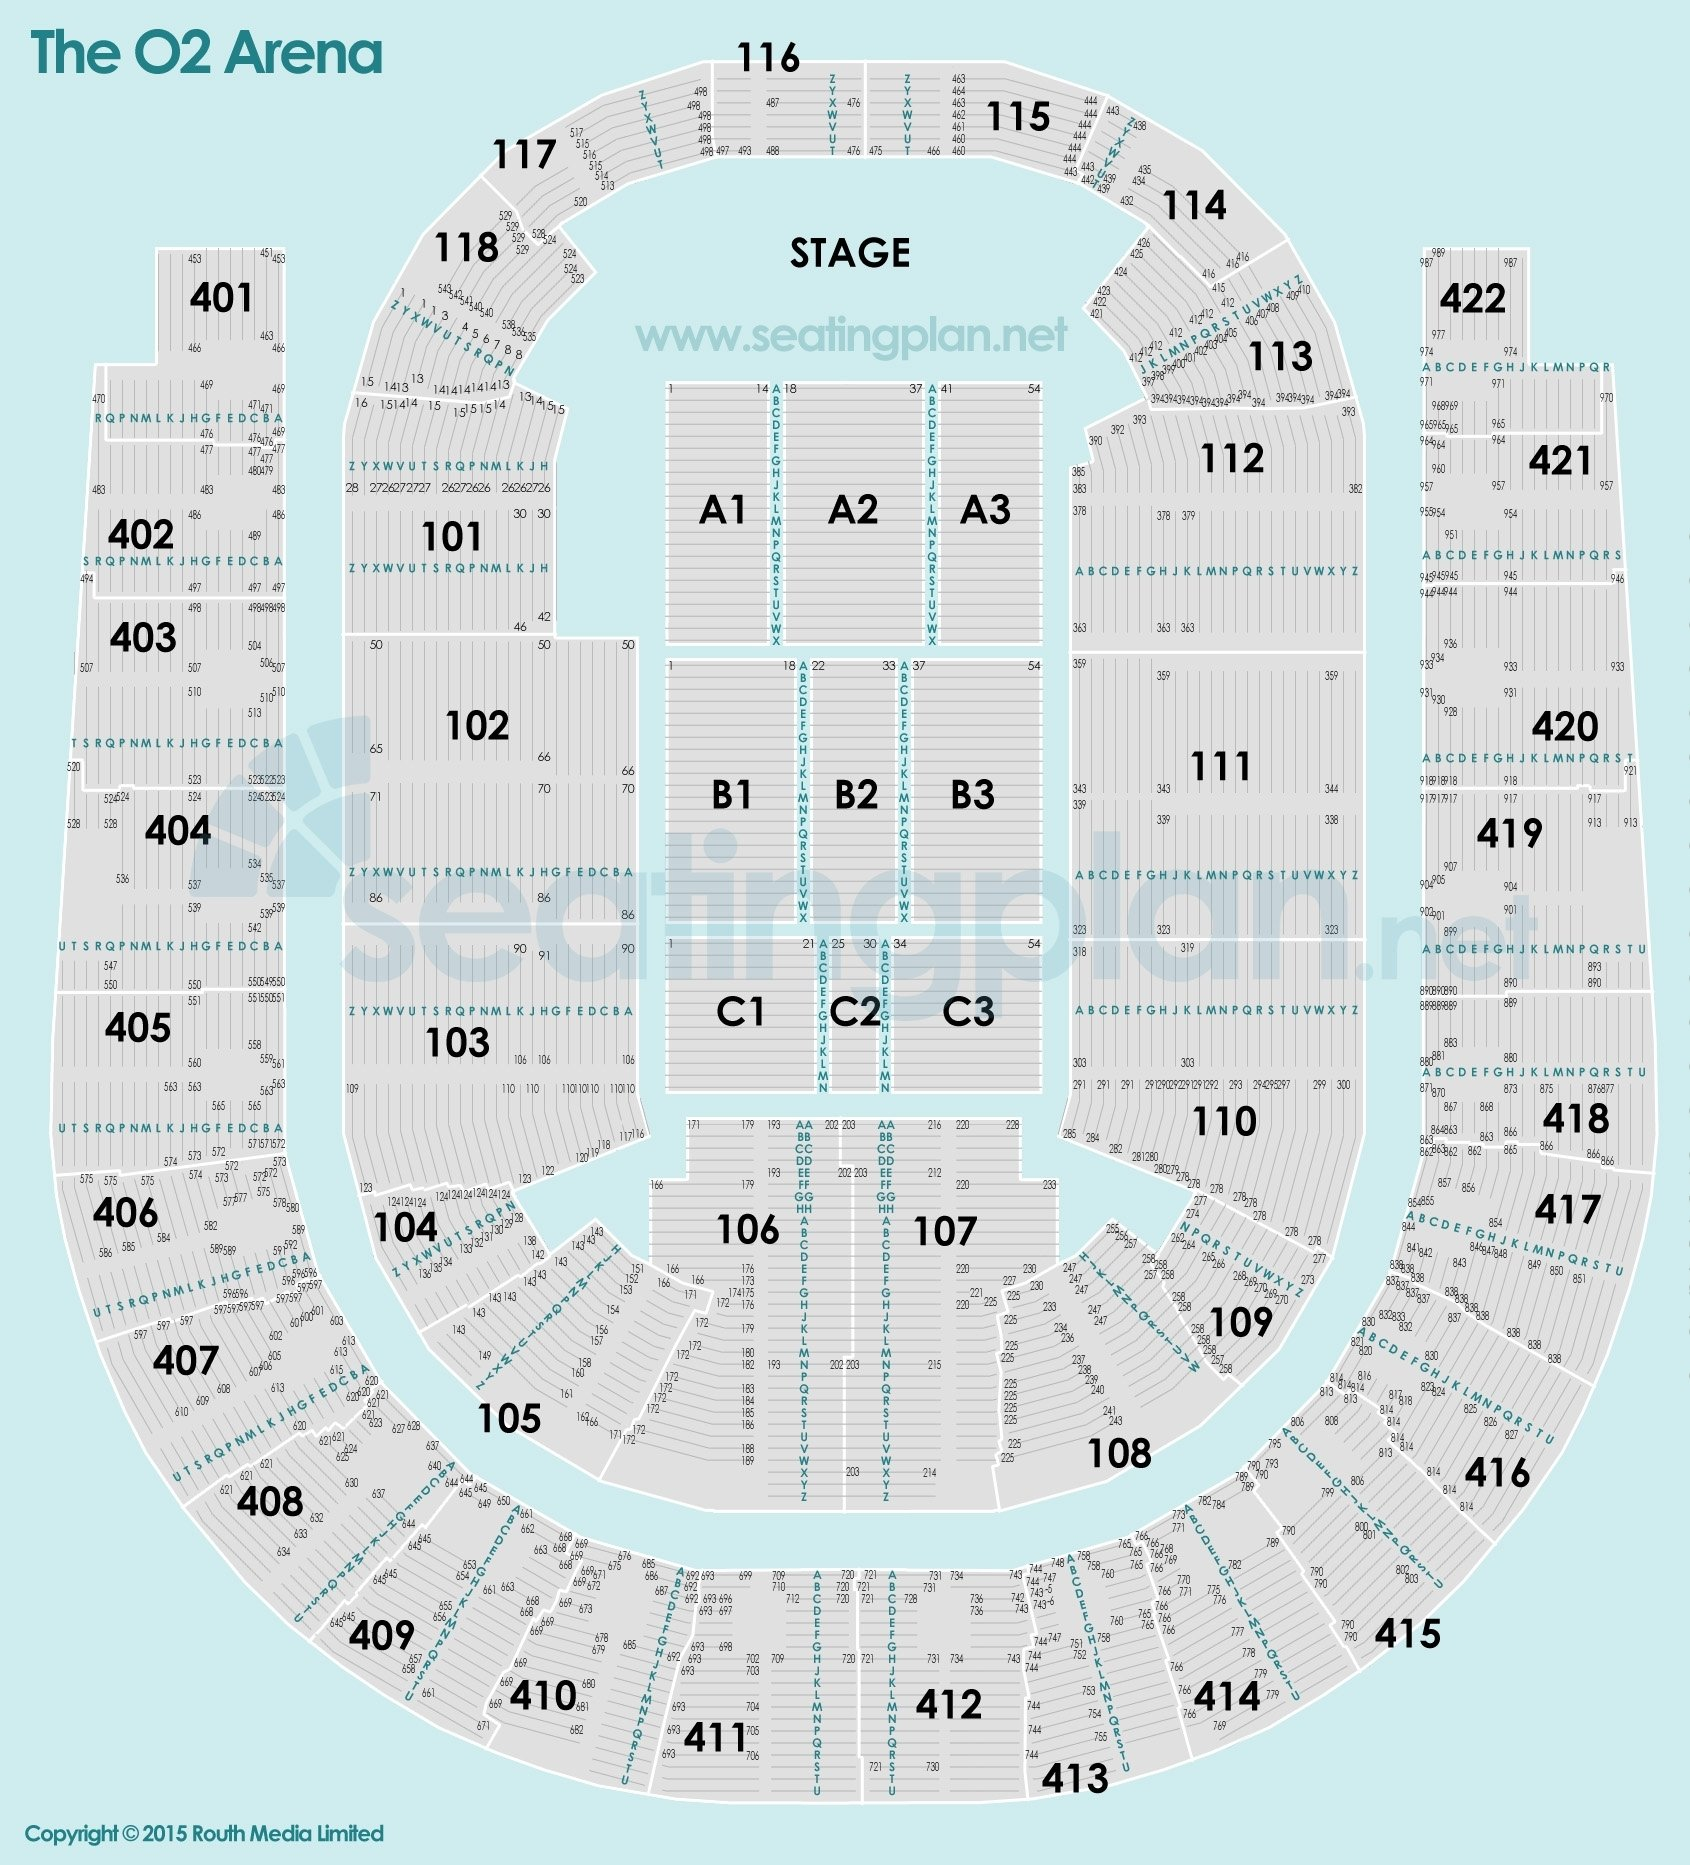 O2 Seating Map The O2 Arena Detailed Seating Plan O2 Seating Map